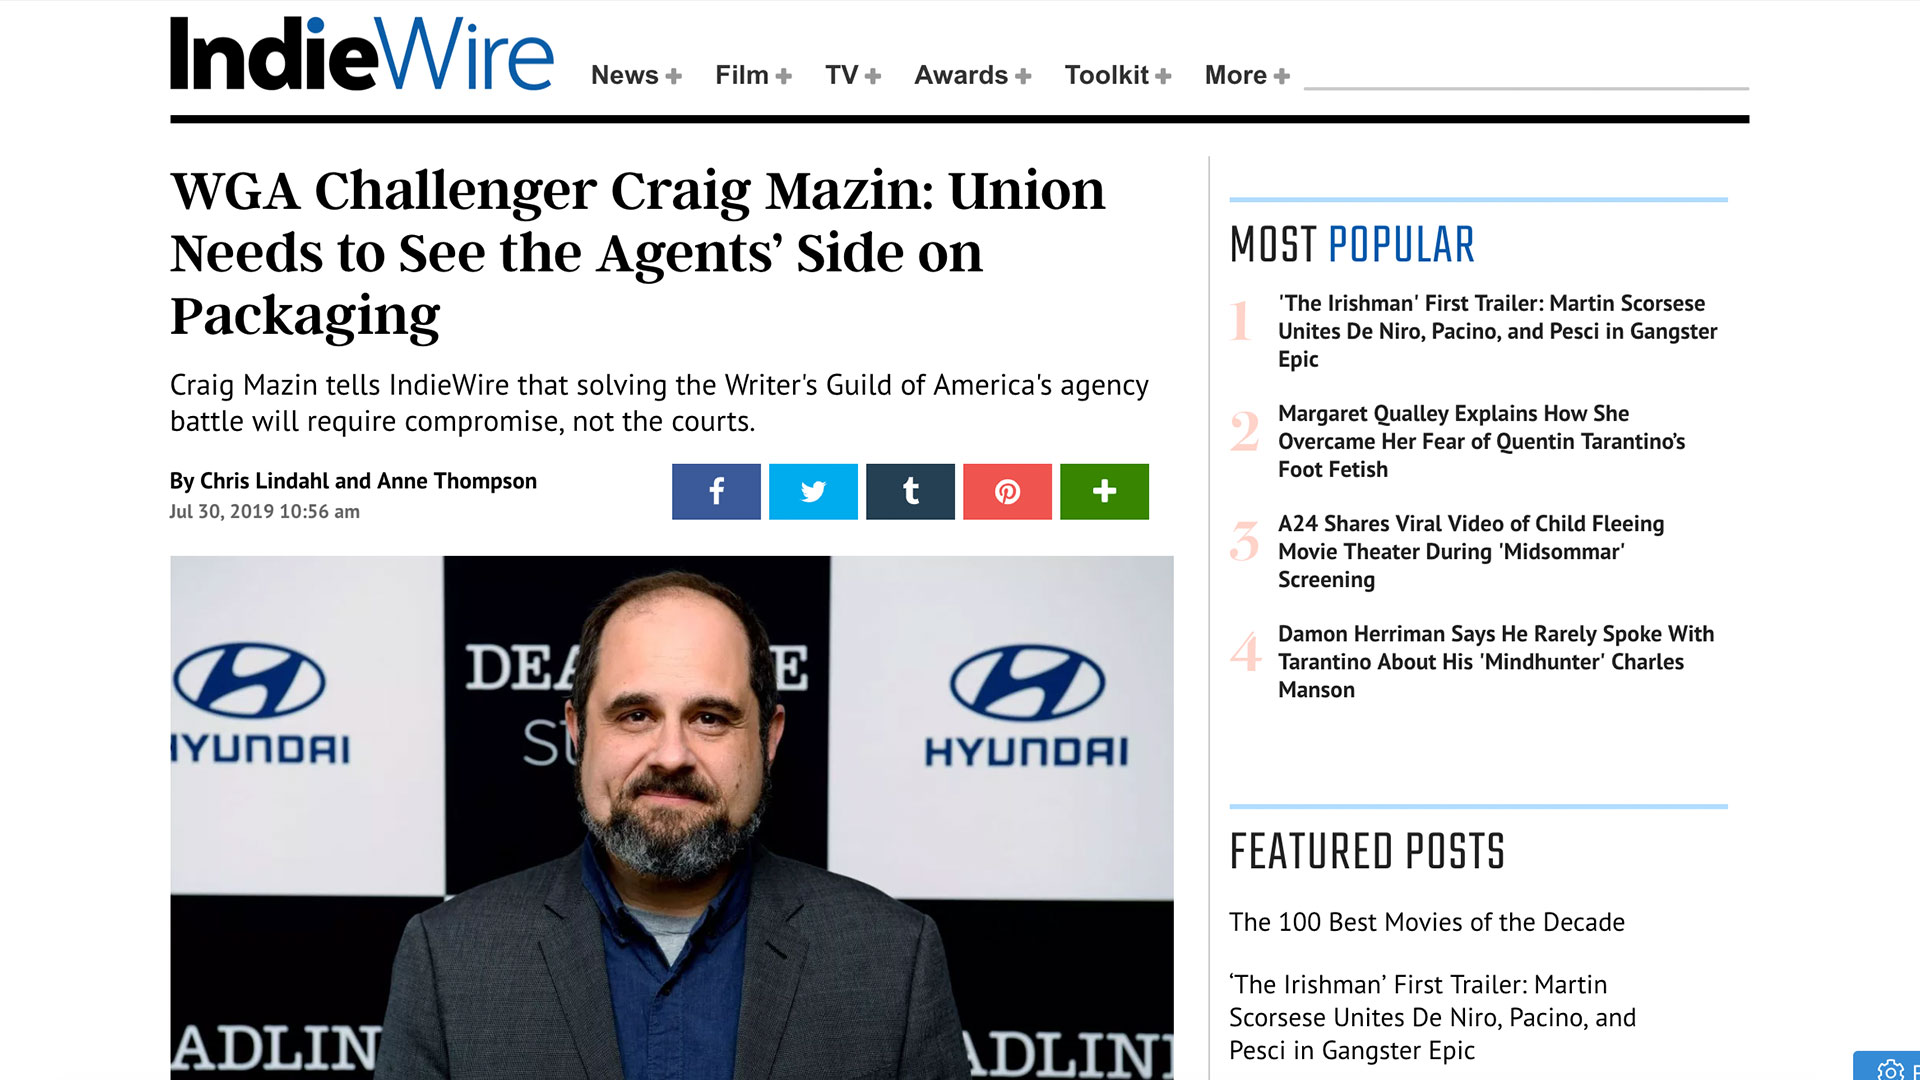 Fairness Rocks News WGA Challenger Craig Mazin: Union Needs to See the Agents' Side on Packaging